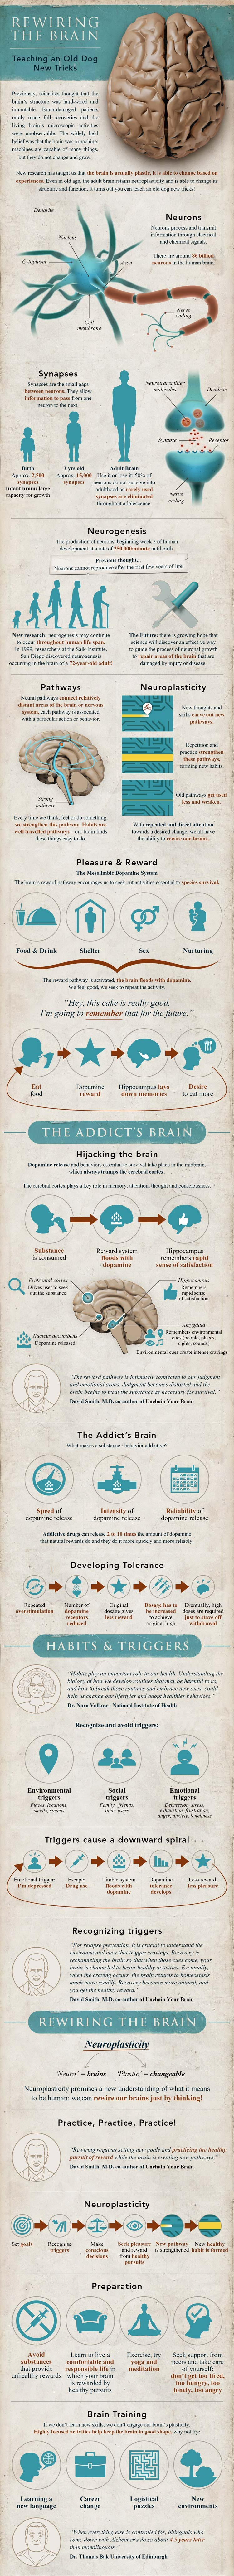 Rewiring the Brain Infographic